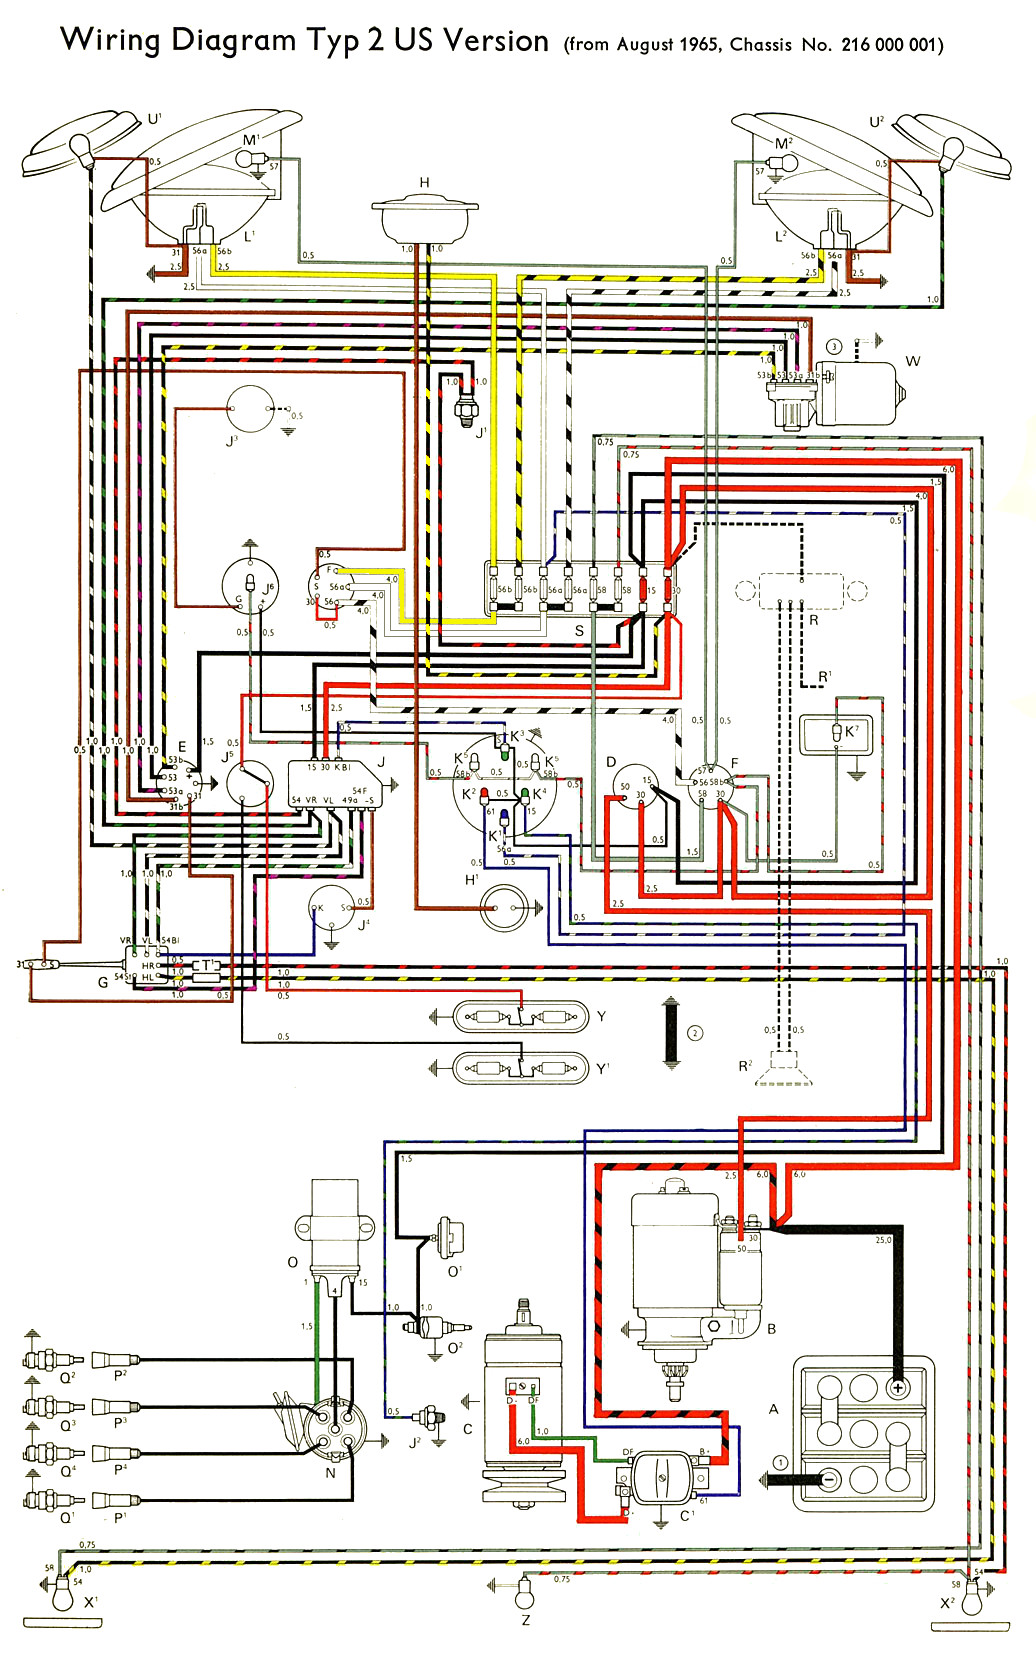 bus_66_USA code 3 mx7000 wiring diagram dolgular com  at n-0.co